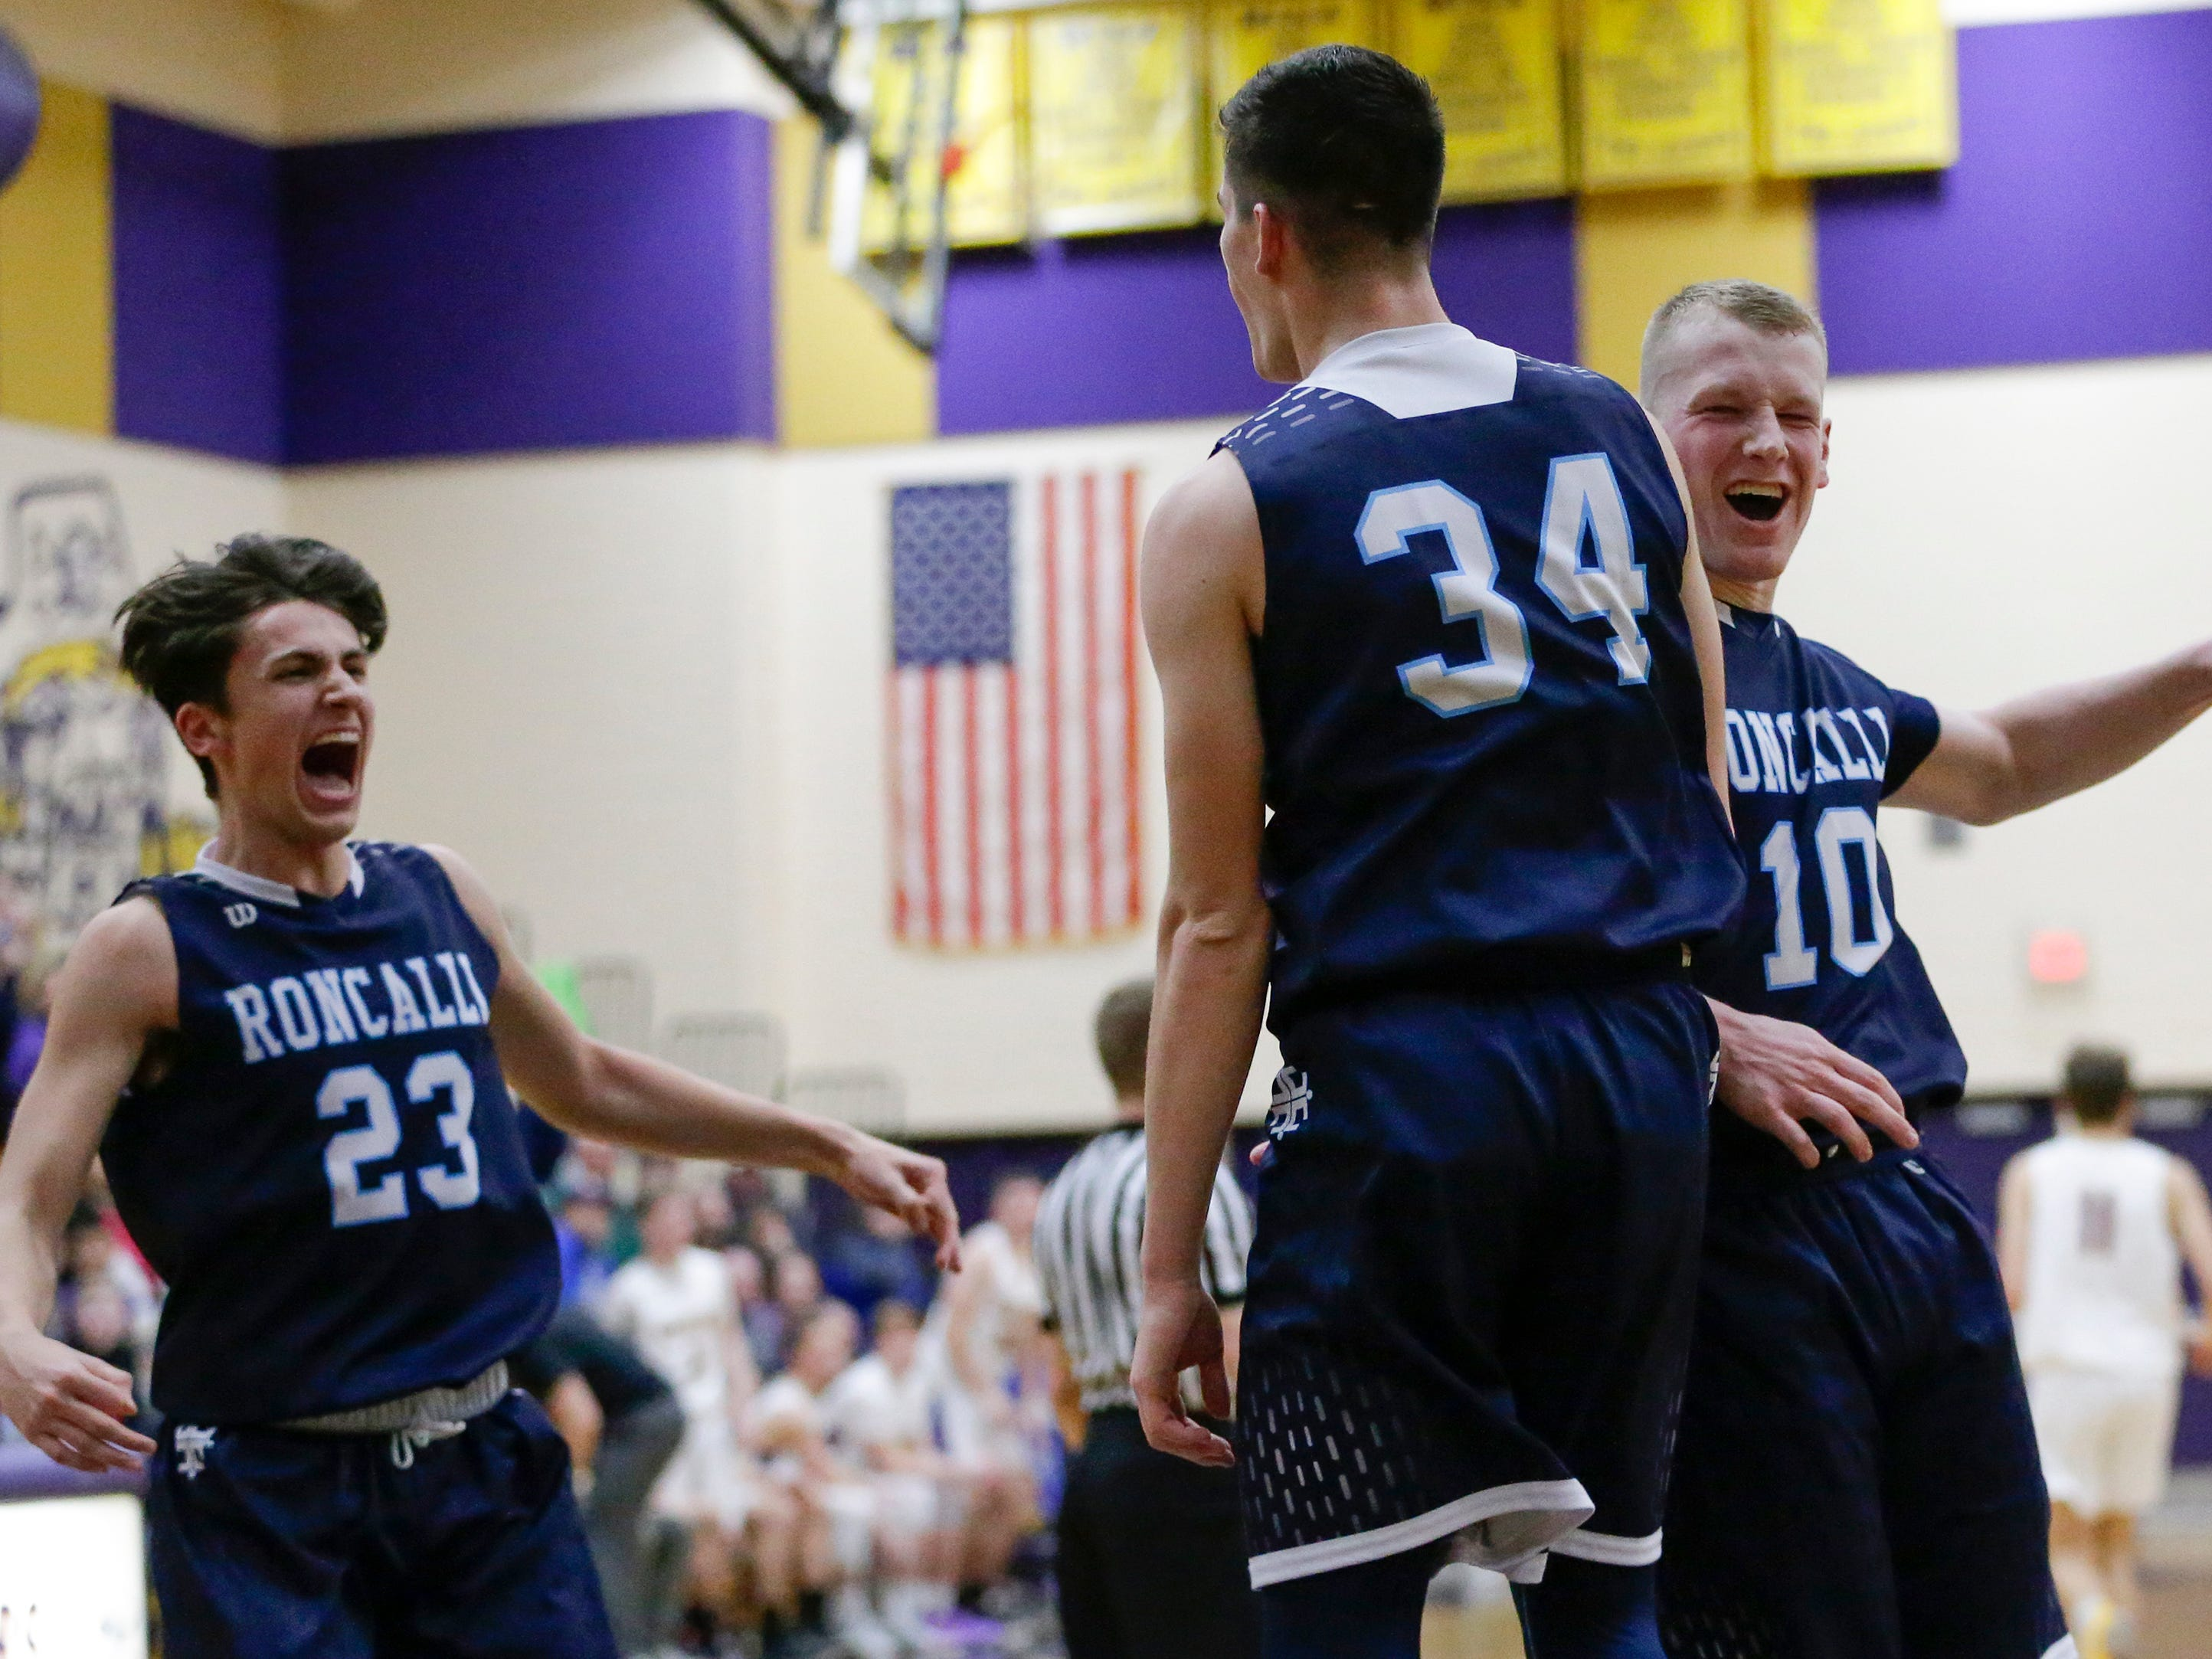 Roncalli's Ian Behringer (34) reacts after sinking a buzzer beater from half court against Two Rivers at Two Rivers High School Friday, February 1, 2019, in Two Rivers, Wis.